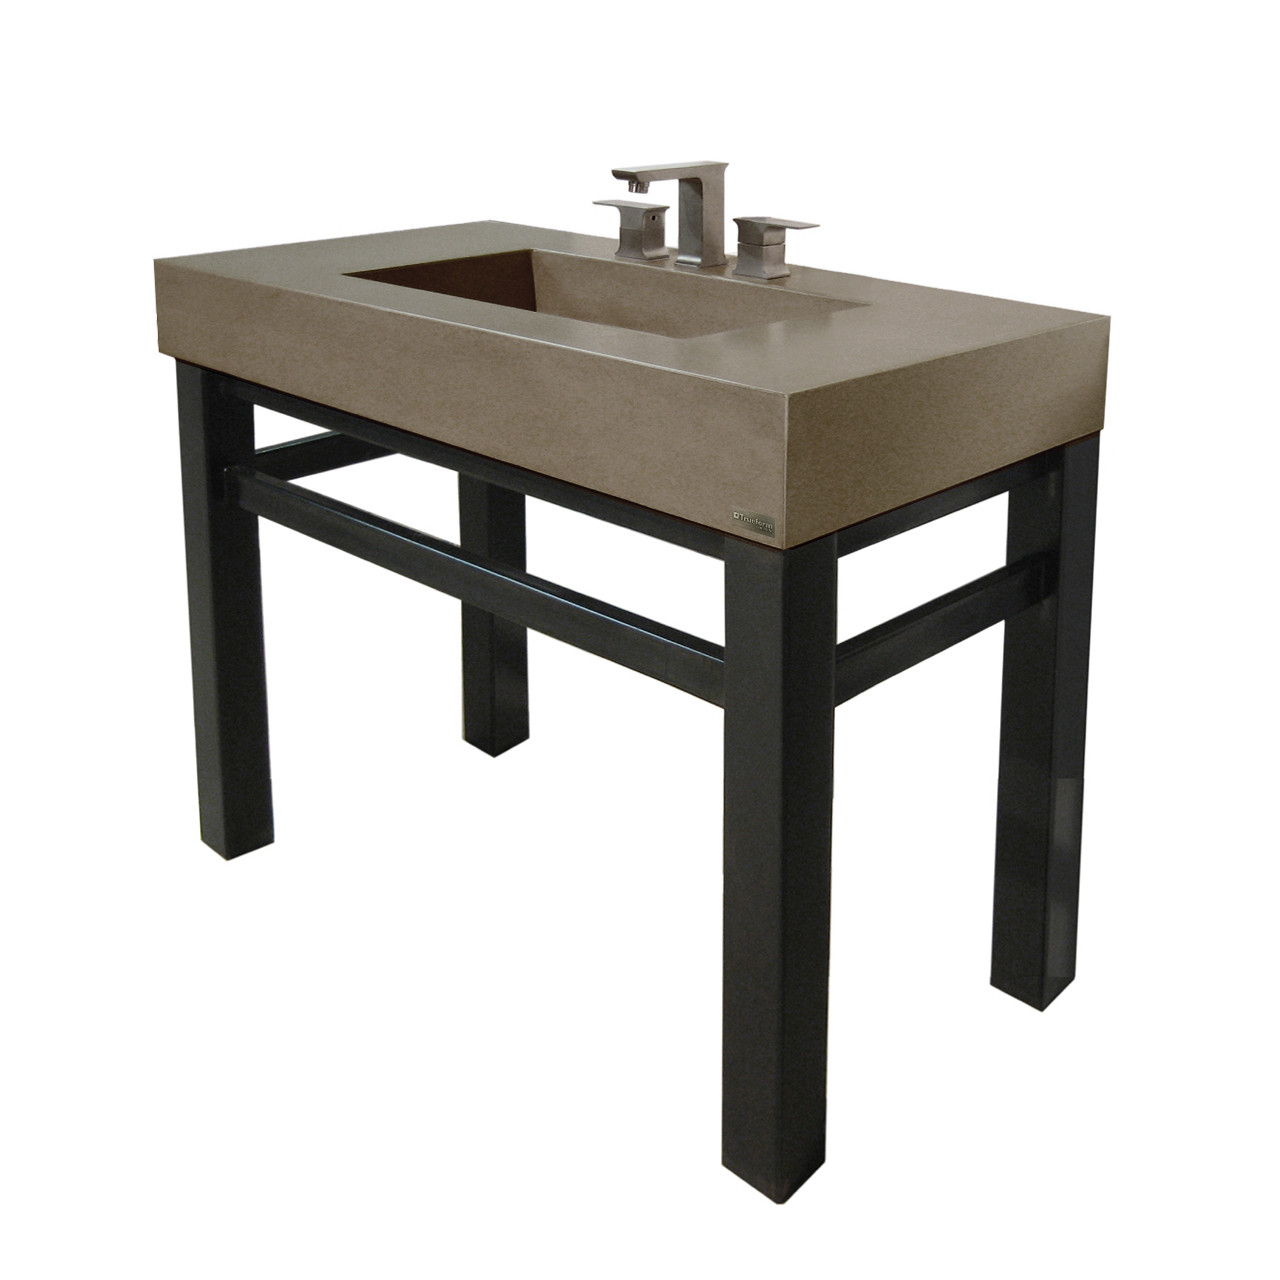 36 industrial vanity with concrete rectangle sink